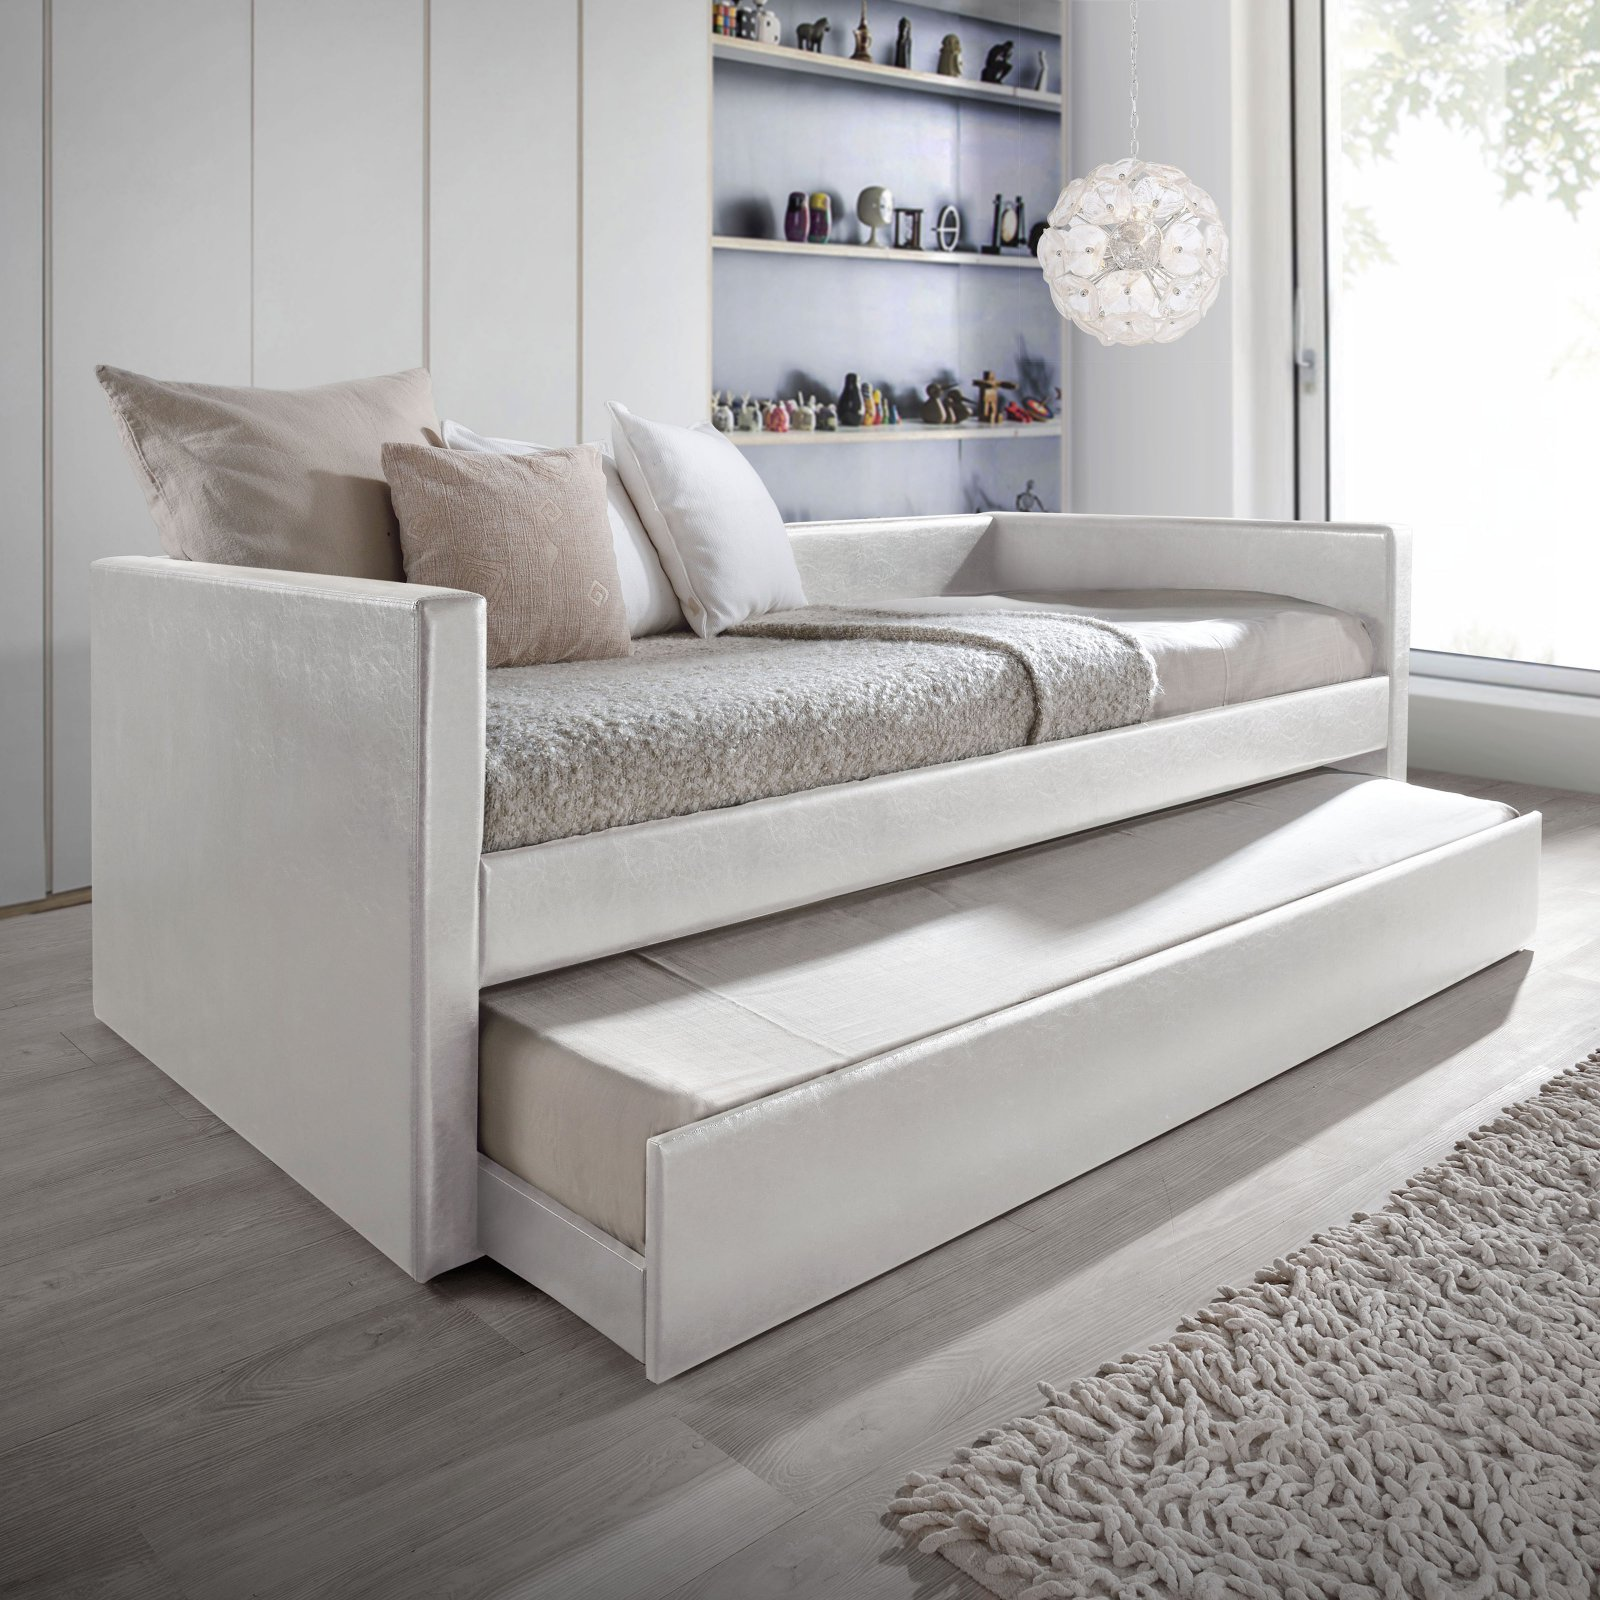 Baxton Studio Risom Modern and Contemporary White Faux Leather Upholstered Twin Size Daybed Bed Frame with Trundle